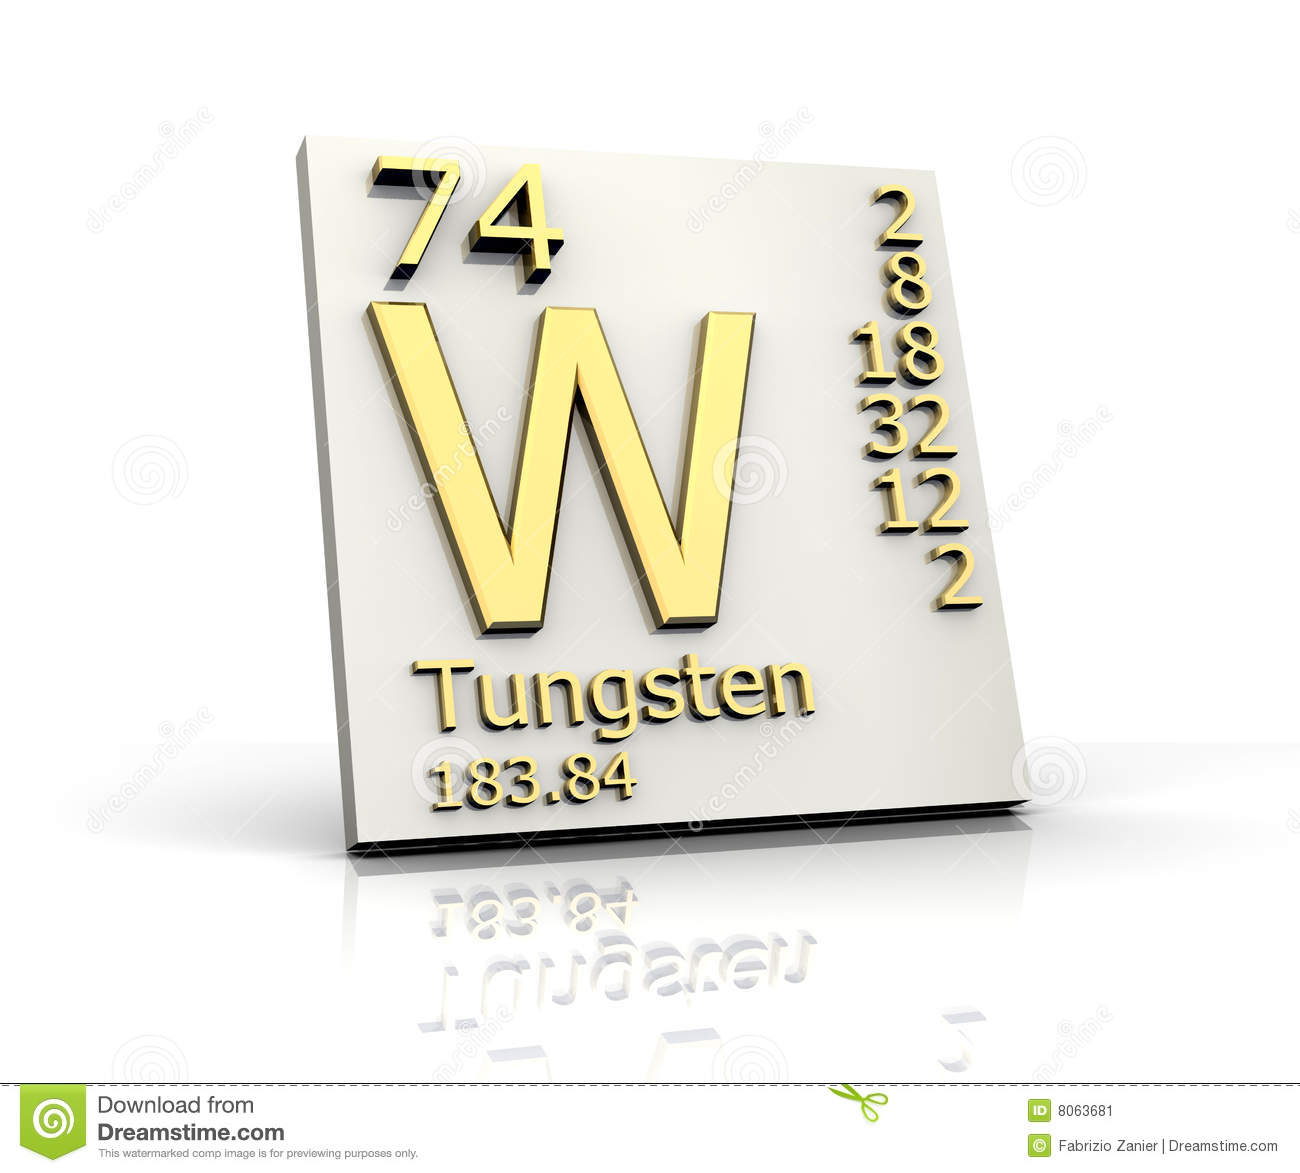 Tungsten form periodic table of elements stock image - Tungsten symbol periodic table ...